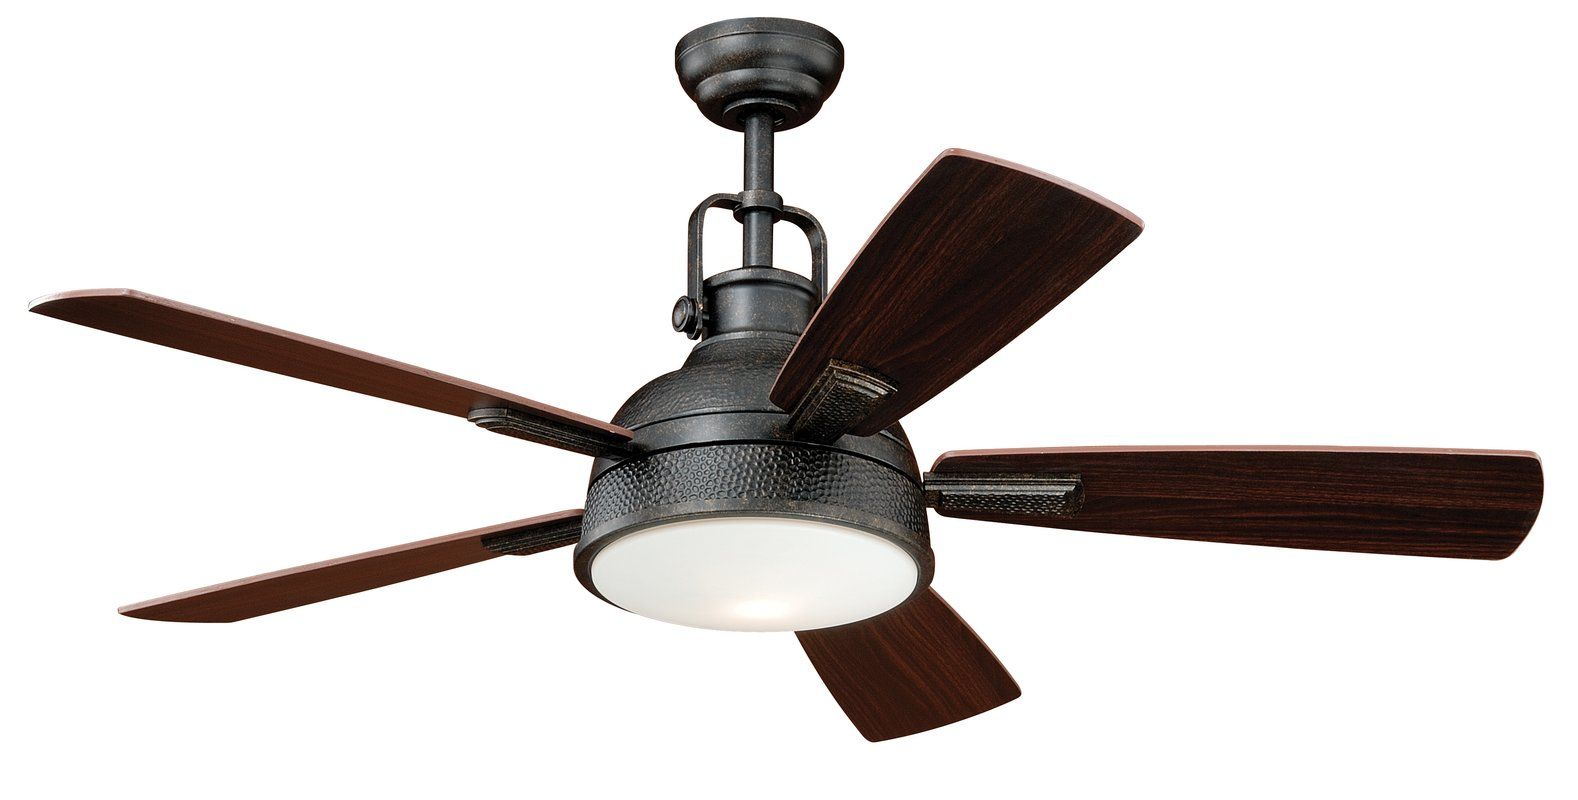 52 Theron Catoe 3 Blade Ceiling Fan With Remote In 2019